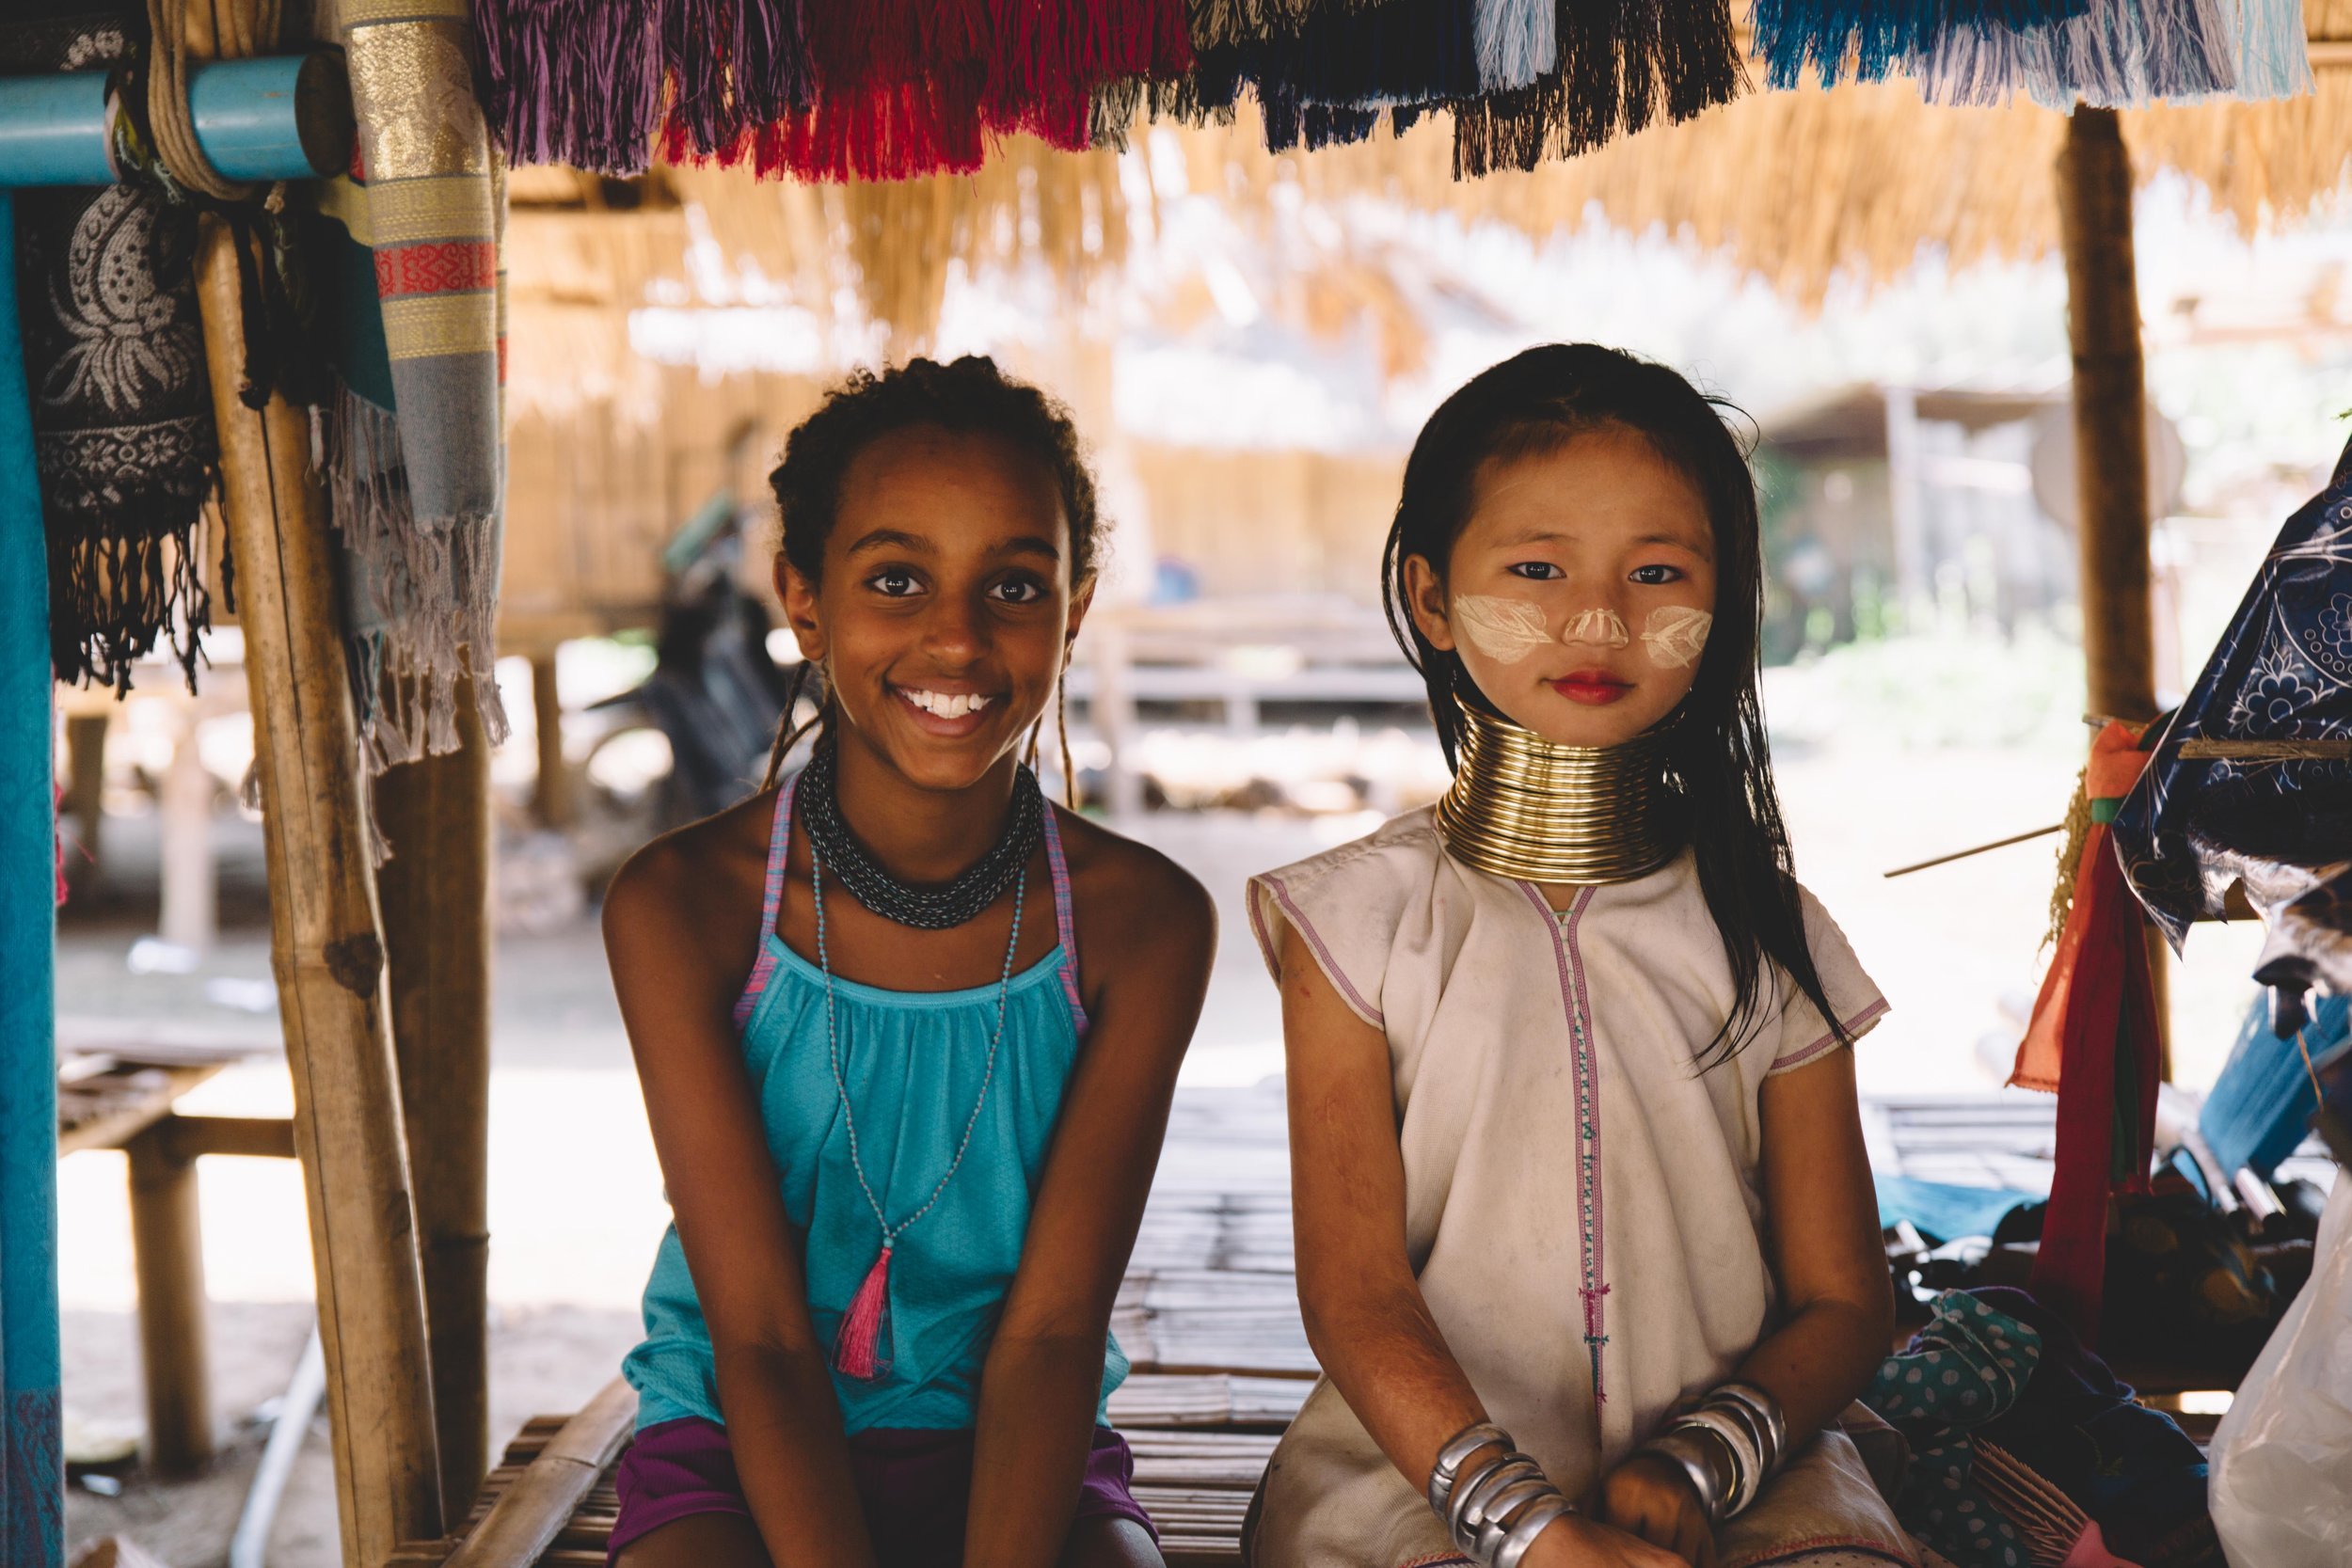 While in Chiang Rai, Thailand we had the opportunity to visit the Karen Long Neck tribe village and meet this beautiful 9 year old girl. Kya was immediately drawn to her, being the same age. We learned many children from the village will never attend school, instead they learn at a very young age how to hand knit scarves and other items to help their family earn an income. The villagers have placed rings around the girl's necks, to protect from tigers who may enter the village seeking prey. Village stories tell of a young girl who was bitten by a tiger on her neck and killed many years ago.